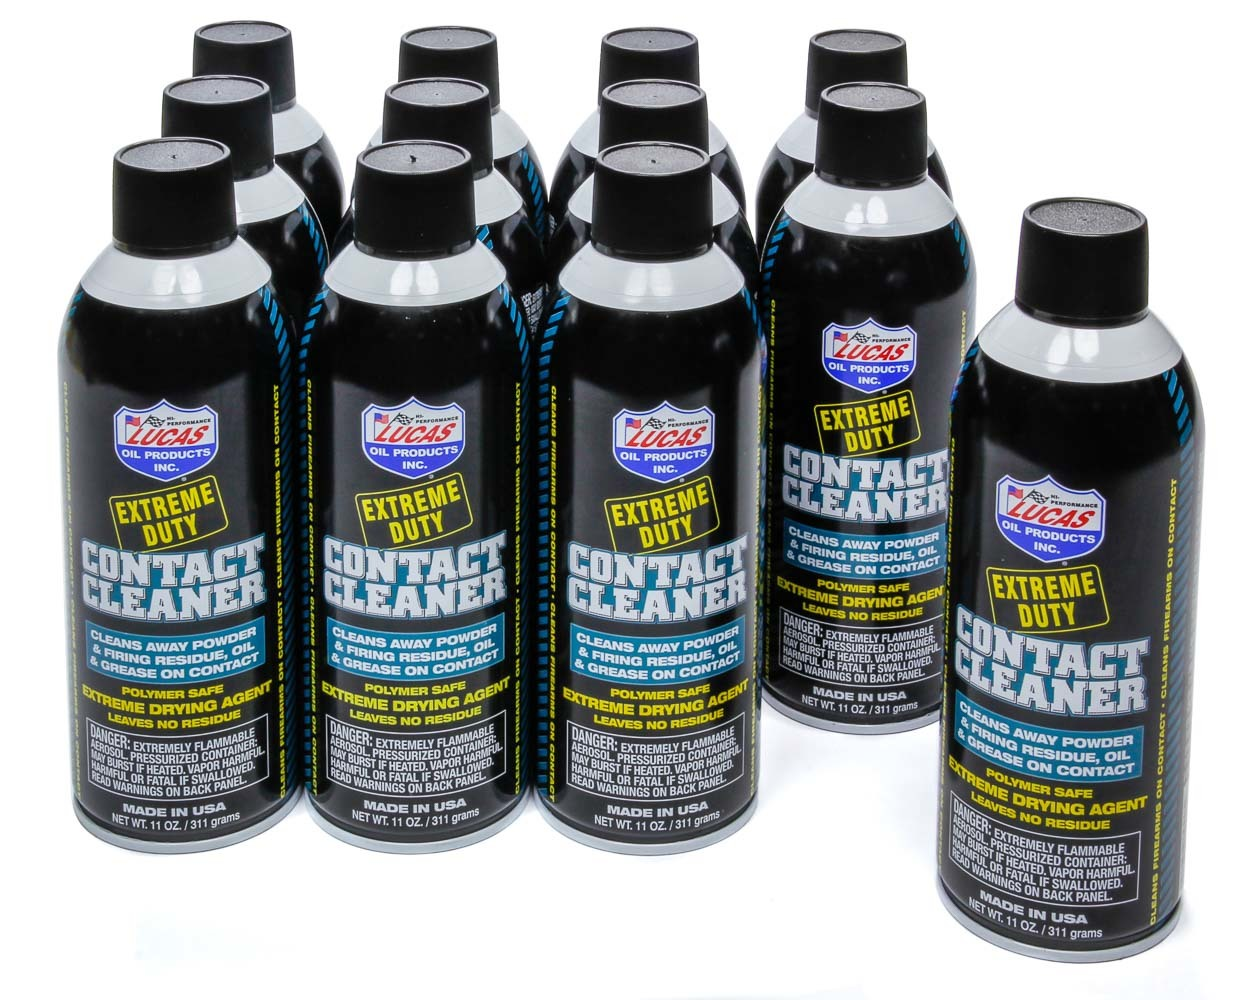 Extreme Duty Contact Cle aner Case 12 x 11 Ounce